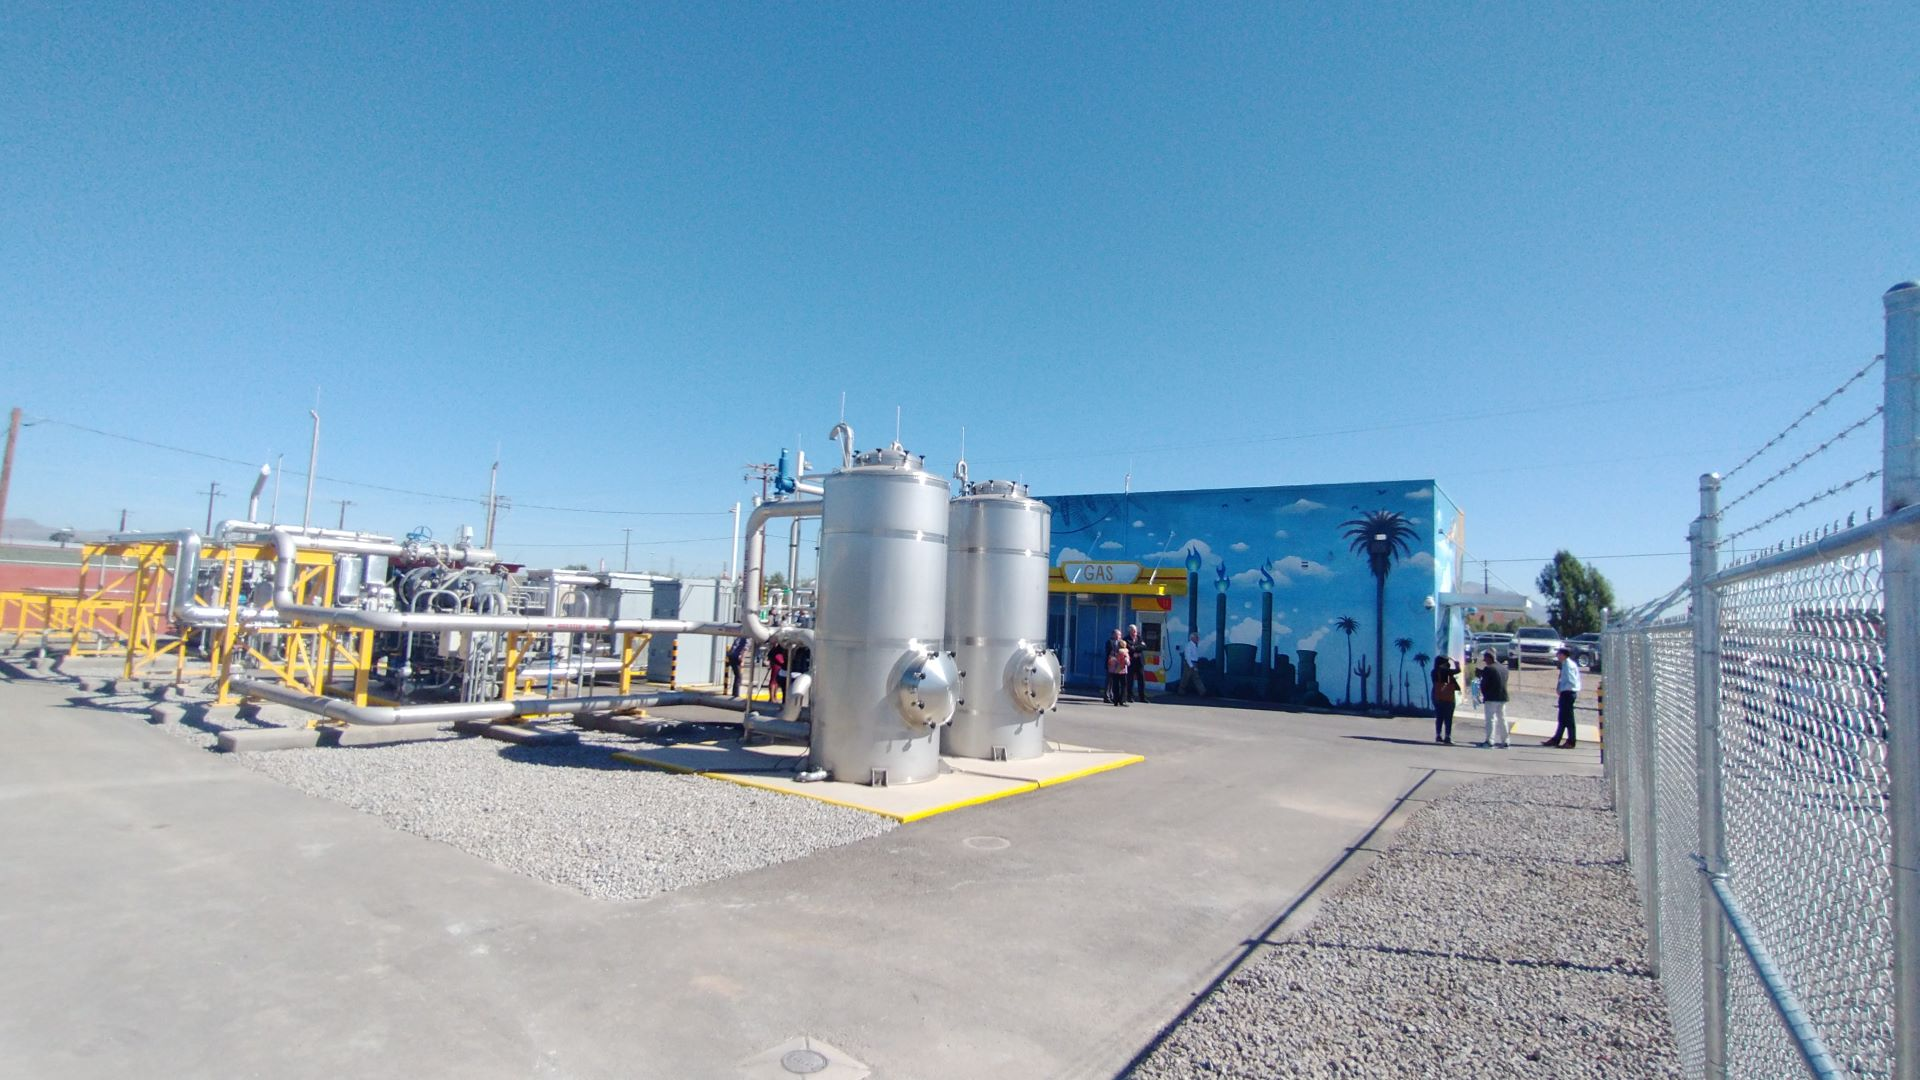 County officials and media tour a biogas refining plant at the Tres Rios Water Reclamation Facility, Oct. 21, 2021.  The newly-dedicated plant will supply renewable natural gas, or RNG, to Southwest Gas, reducing the utility's demand for fossil-fuel based gas.